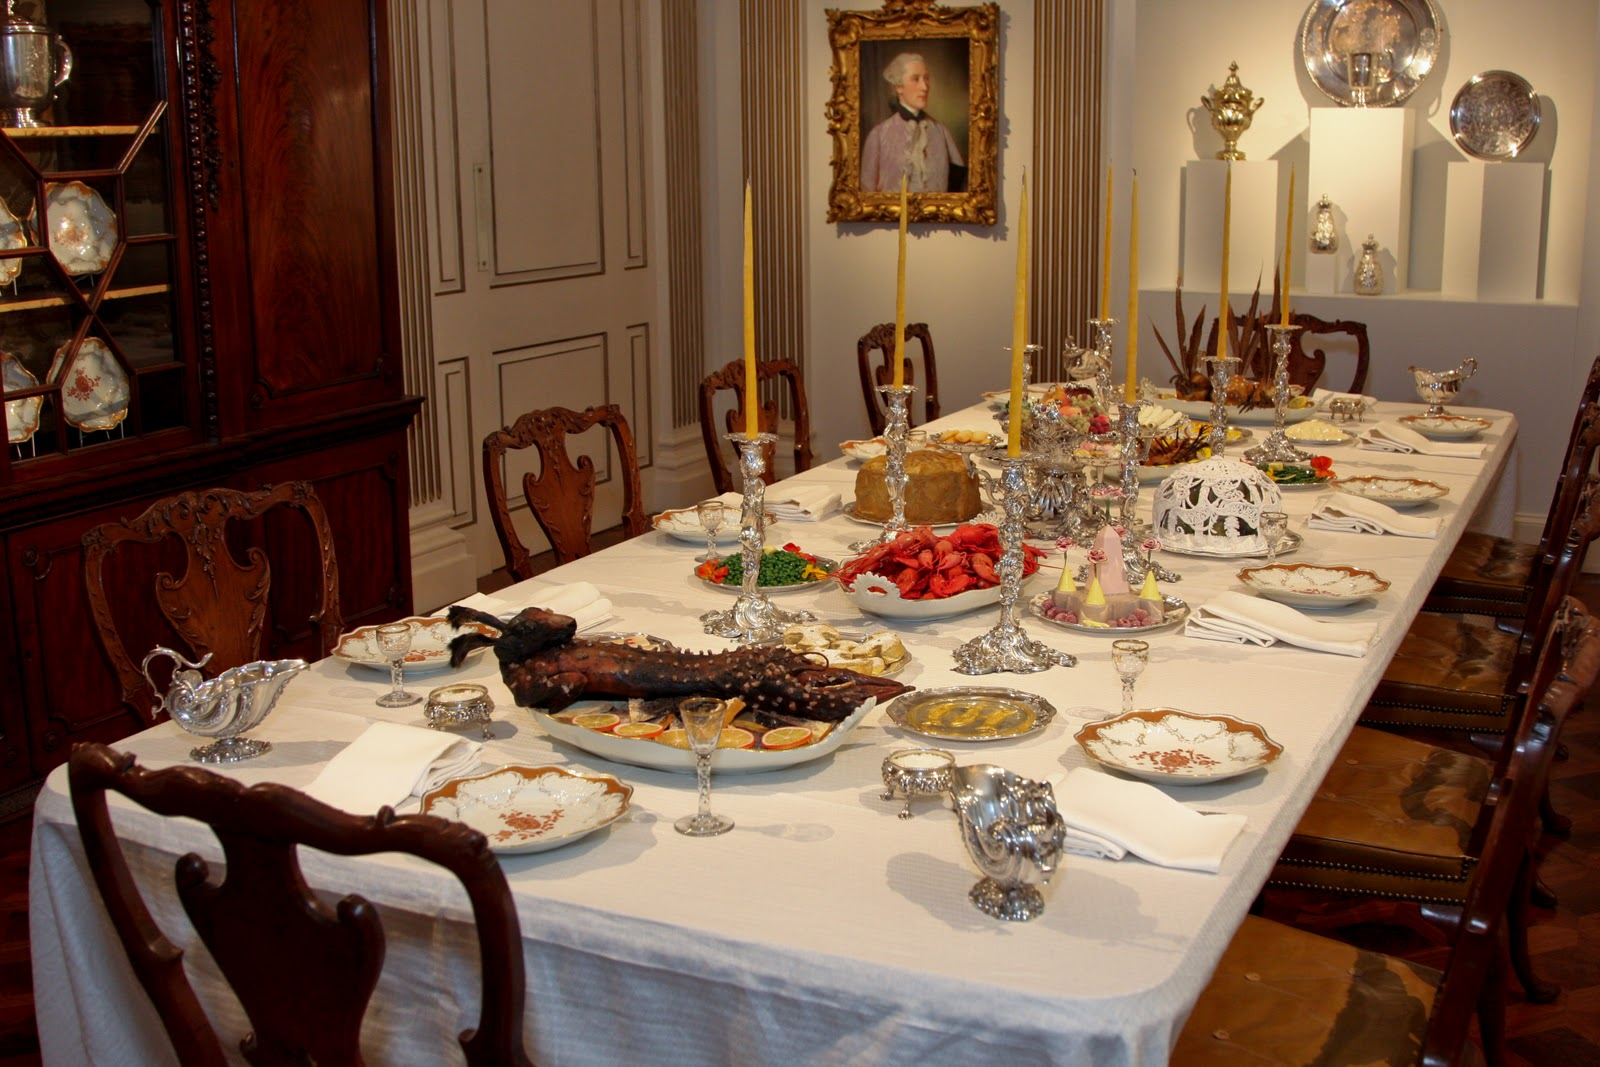 18th century table decorations